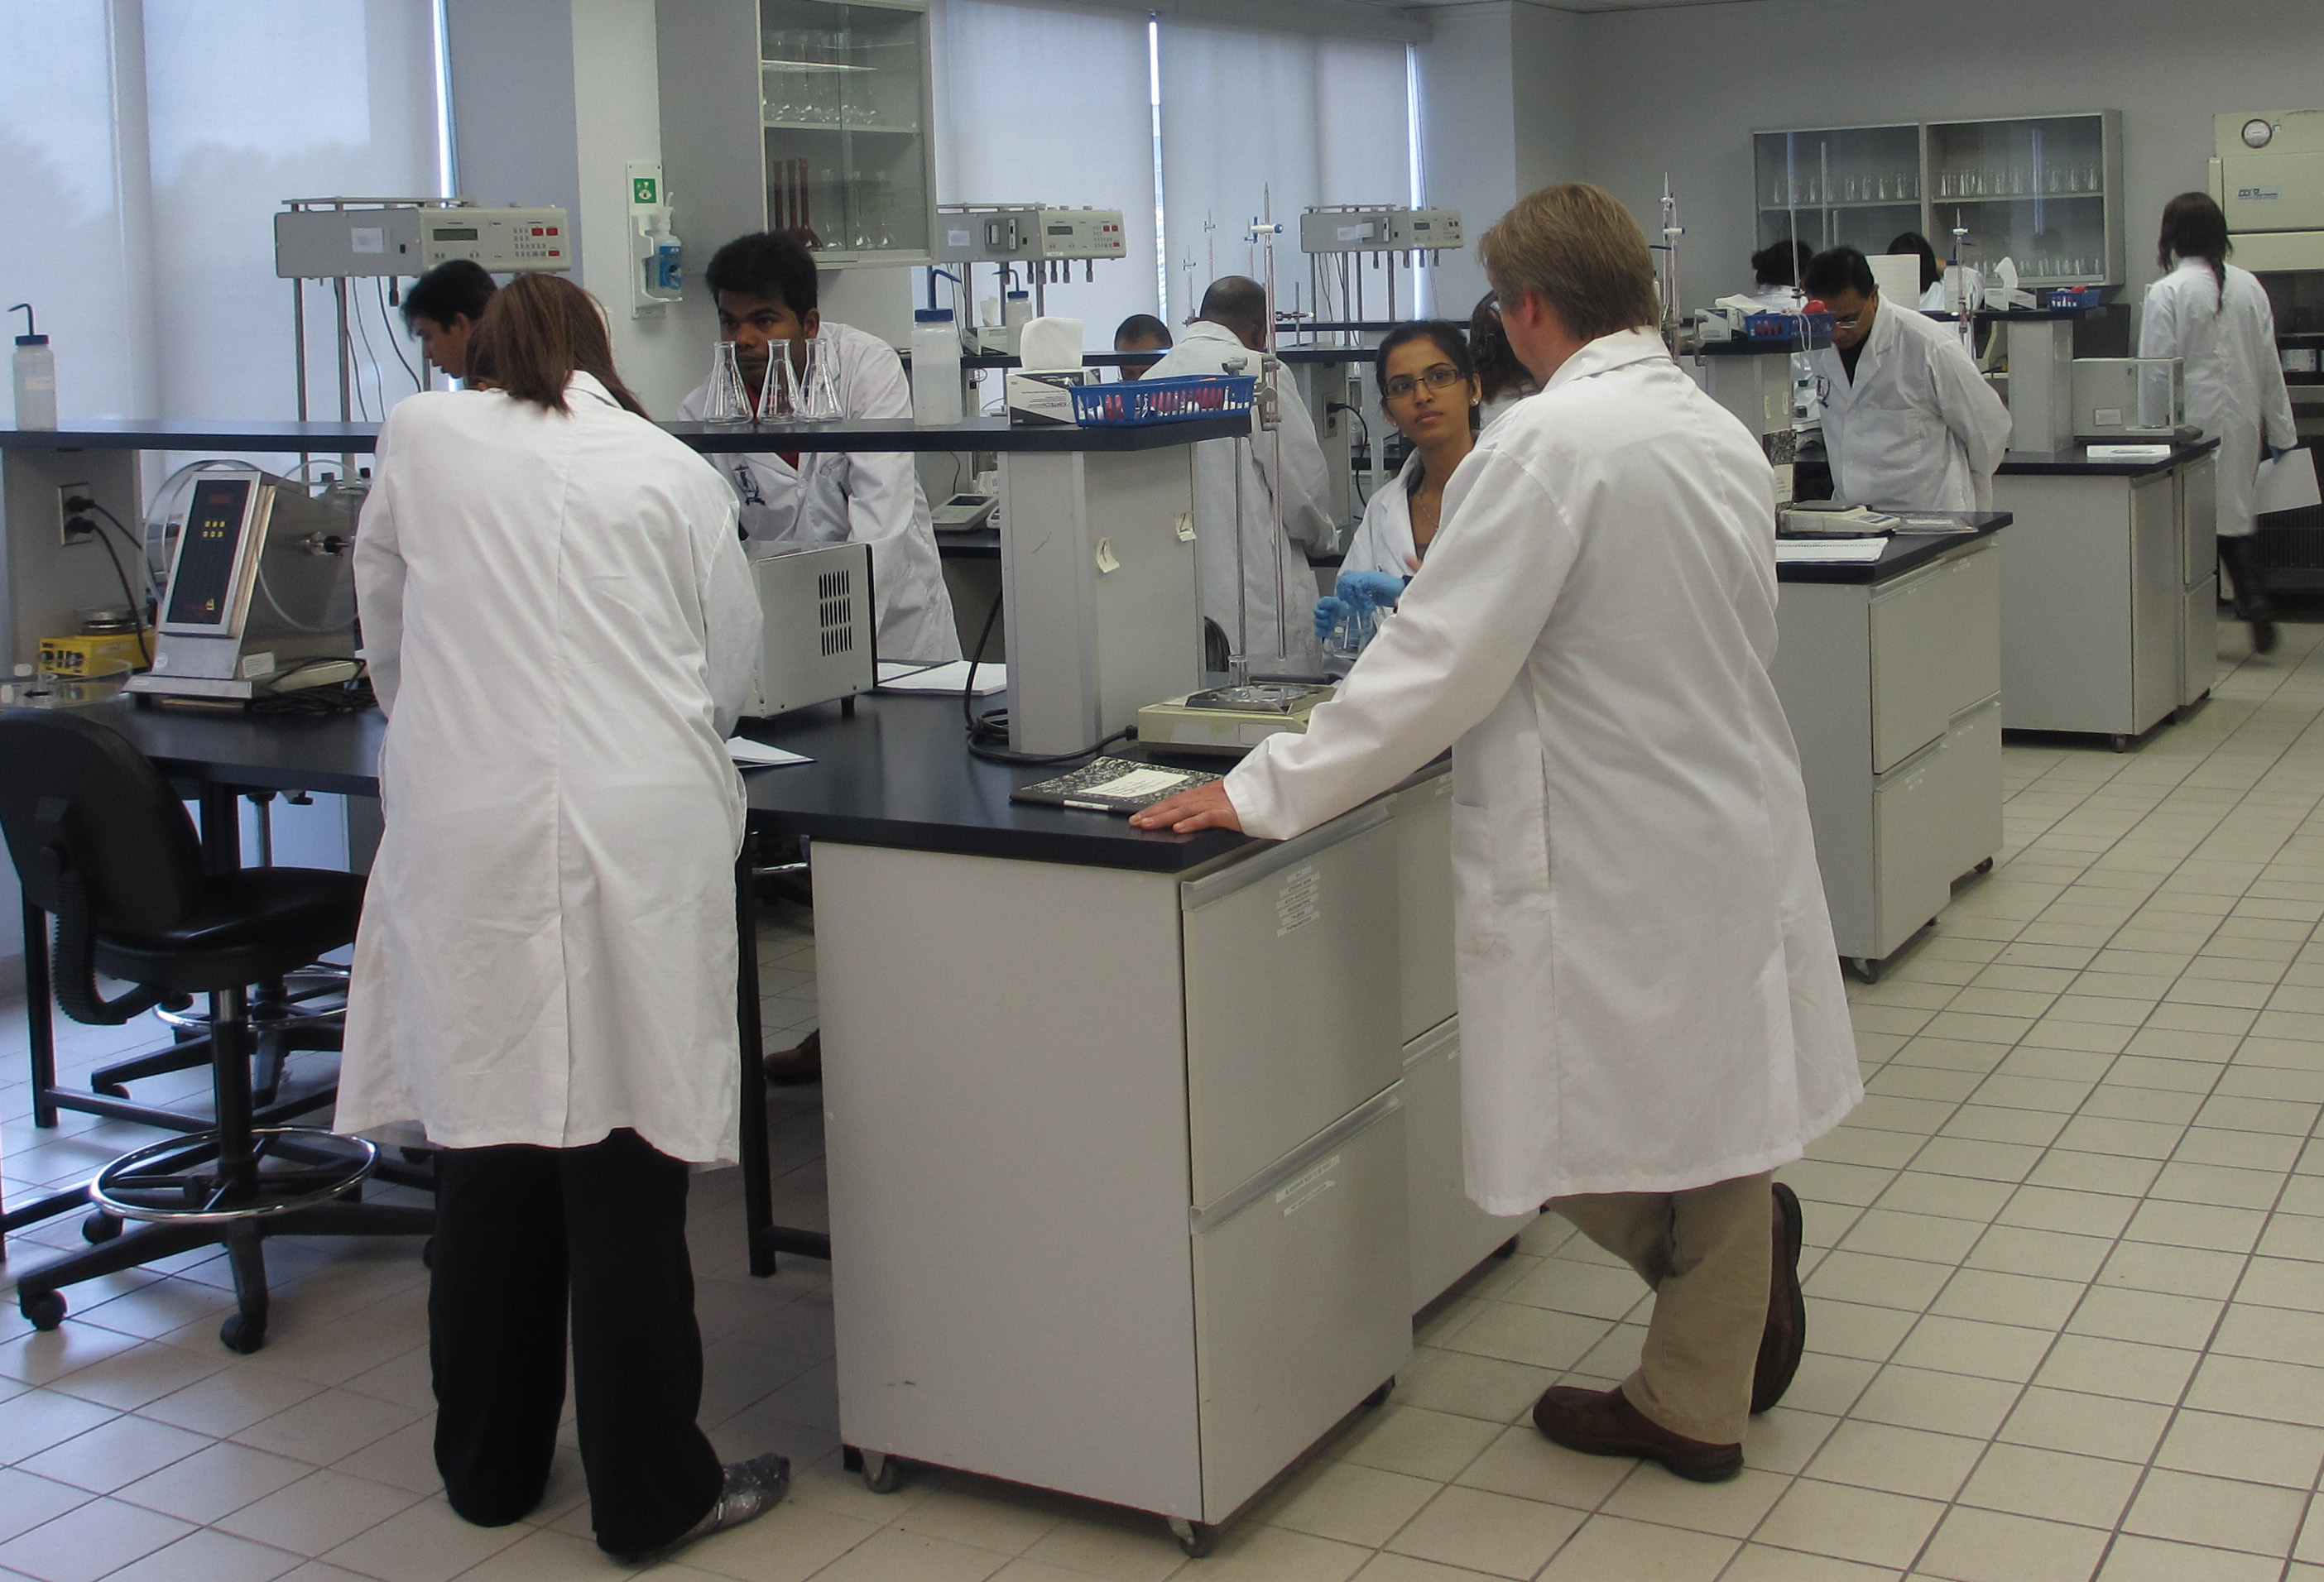 AAPS Students Practicing Experiments in the Lab